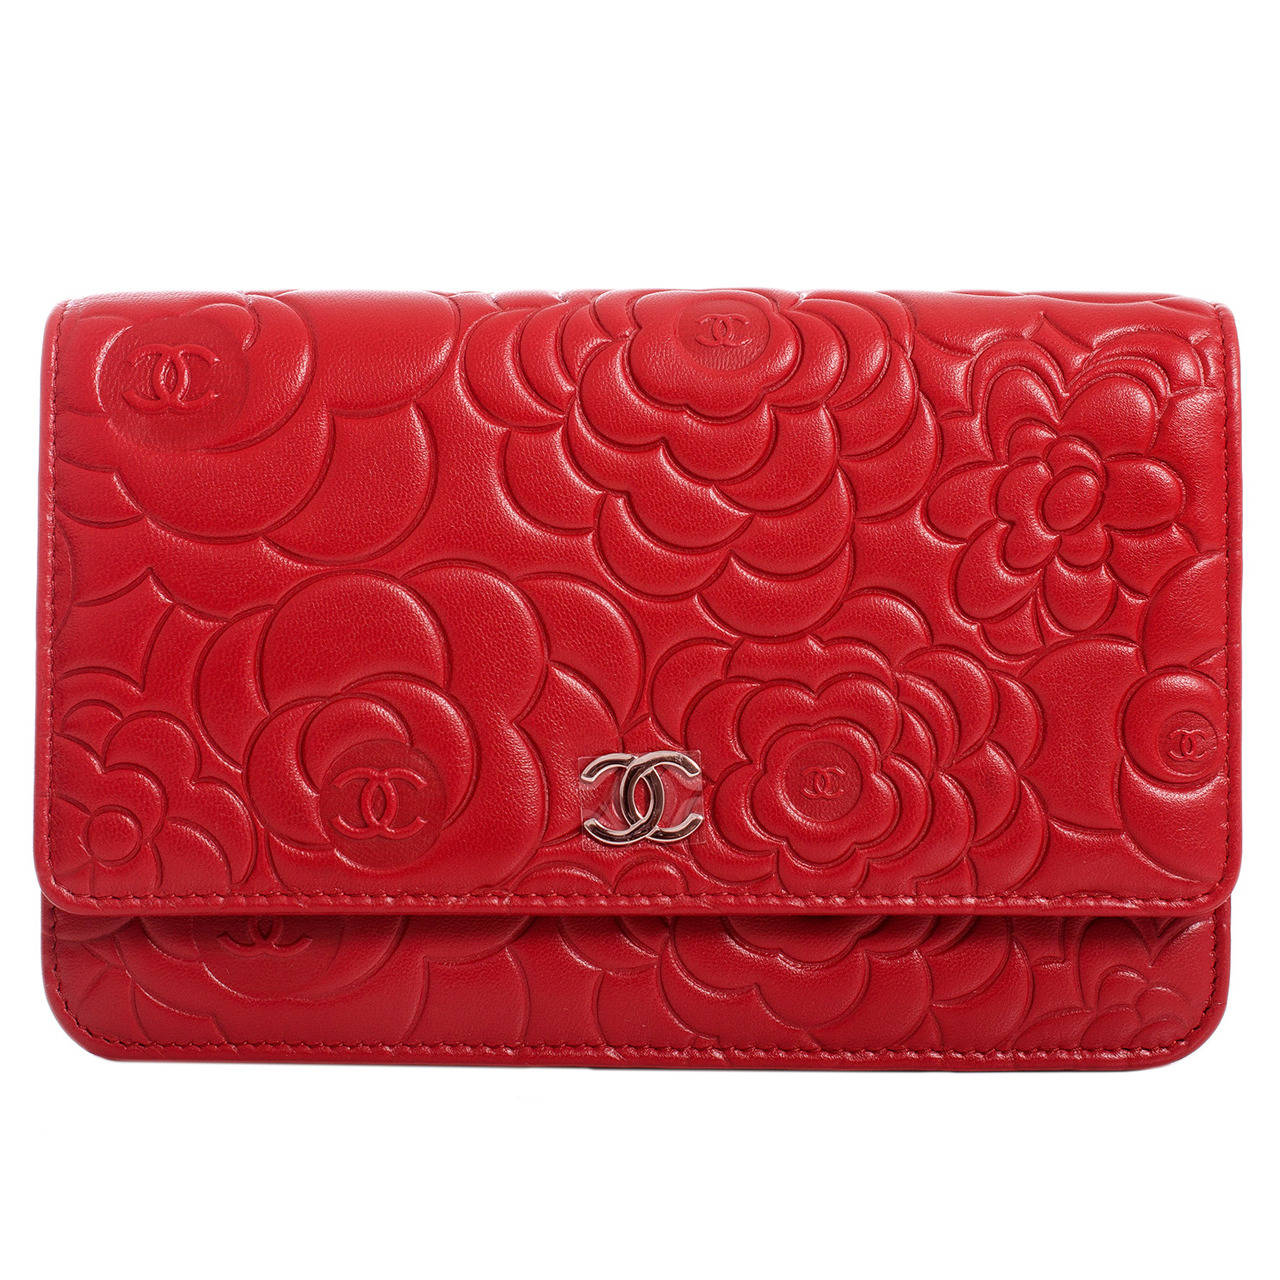 8d559ac803dd Chanel Camellia Wallet On Chain Red | Stanford Center for ...